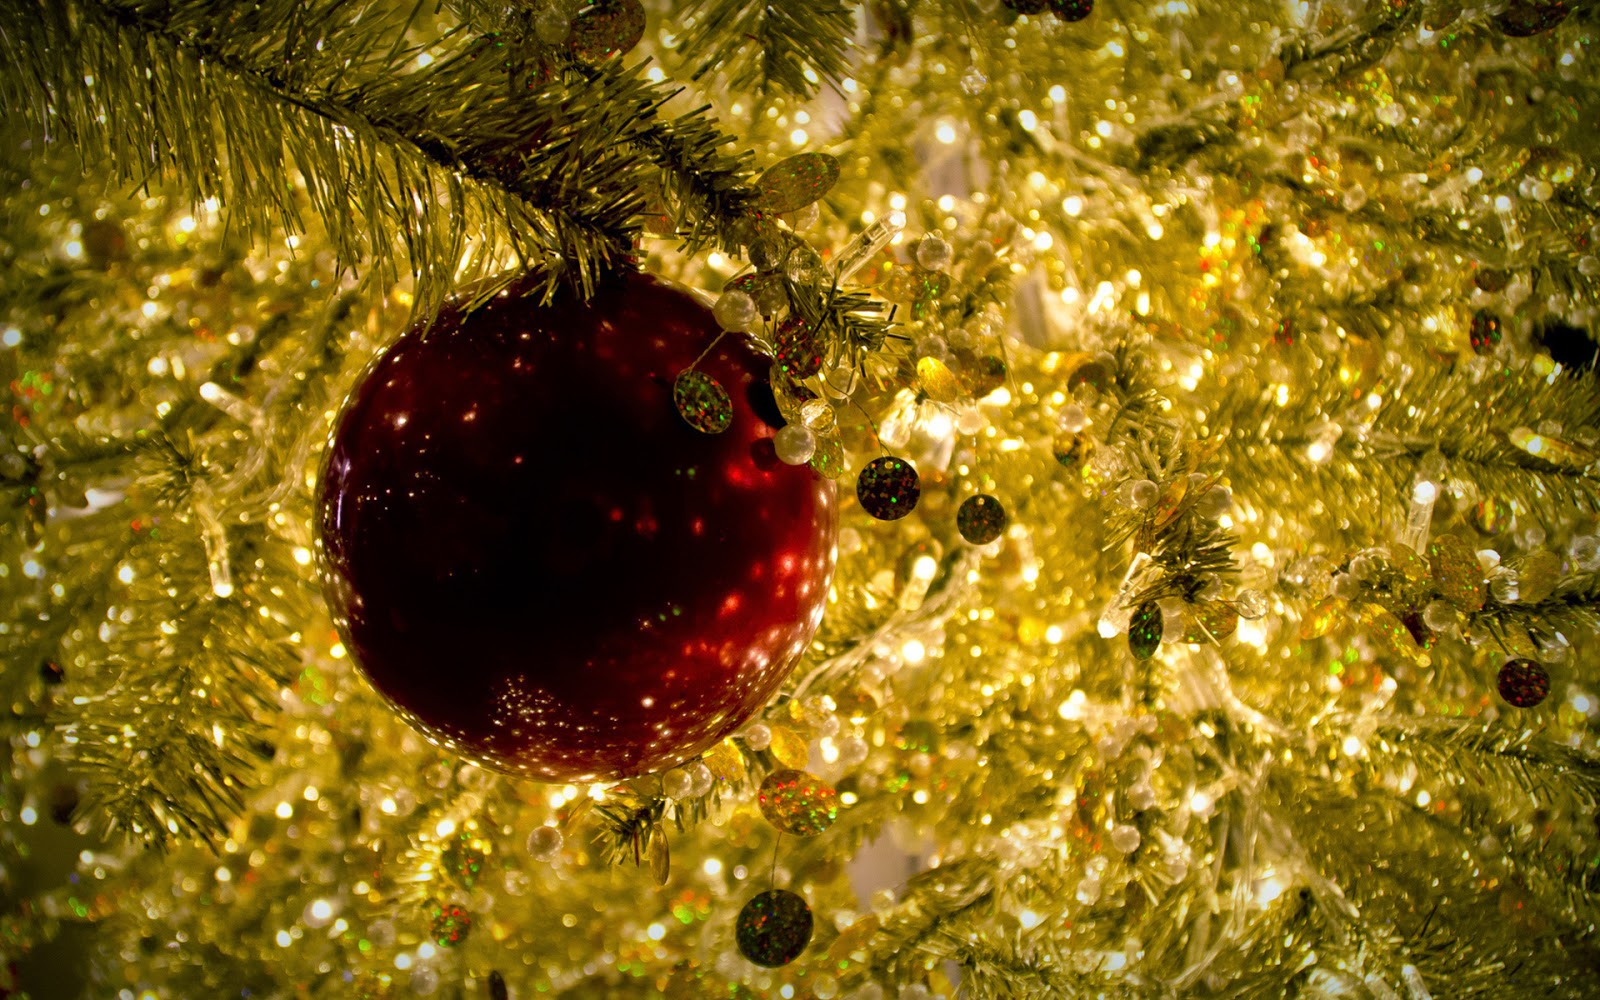 red-Christmas-bauble-in-golden-Christmas-tree-image-picture.jpg